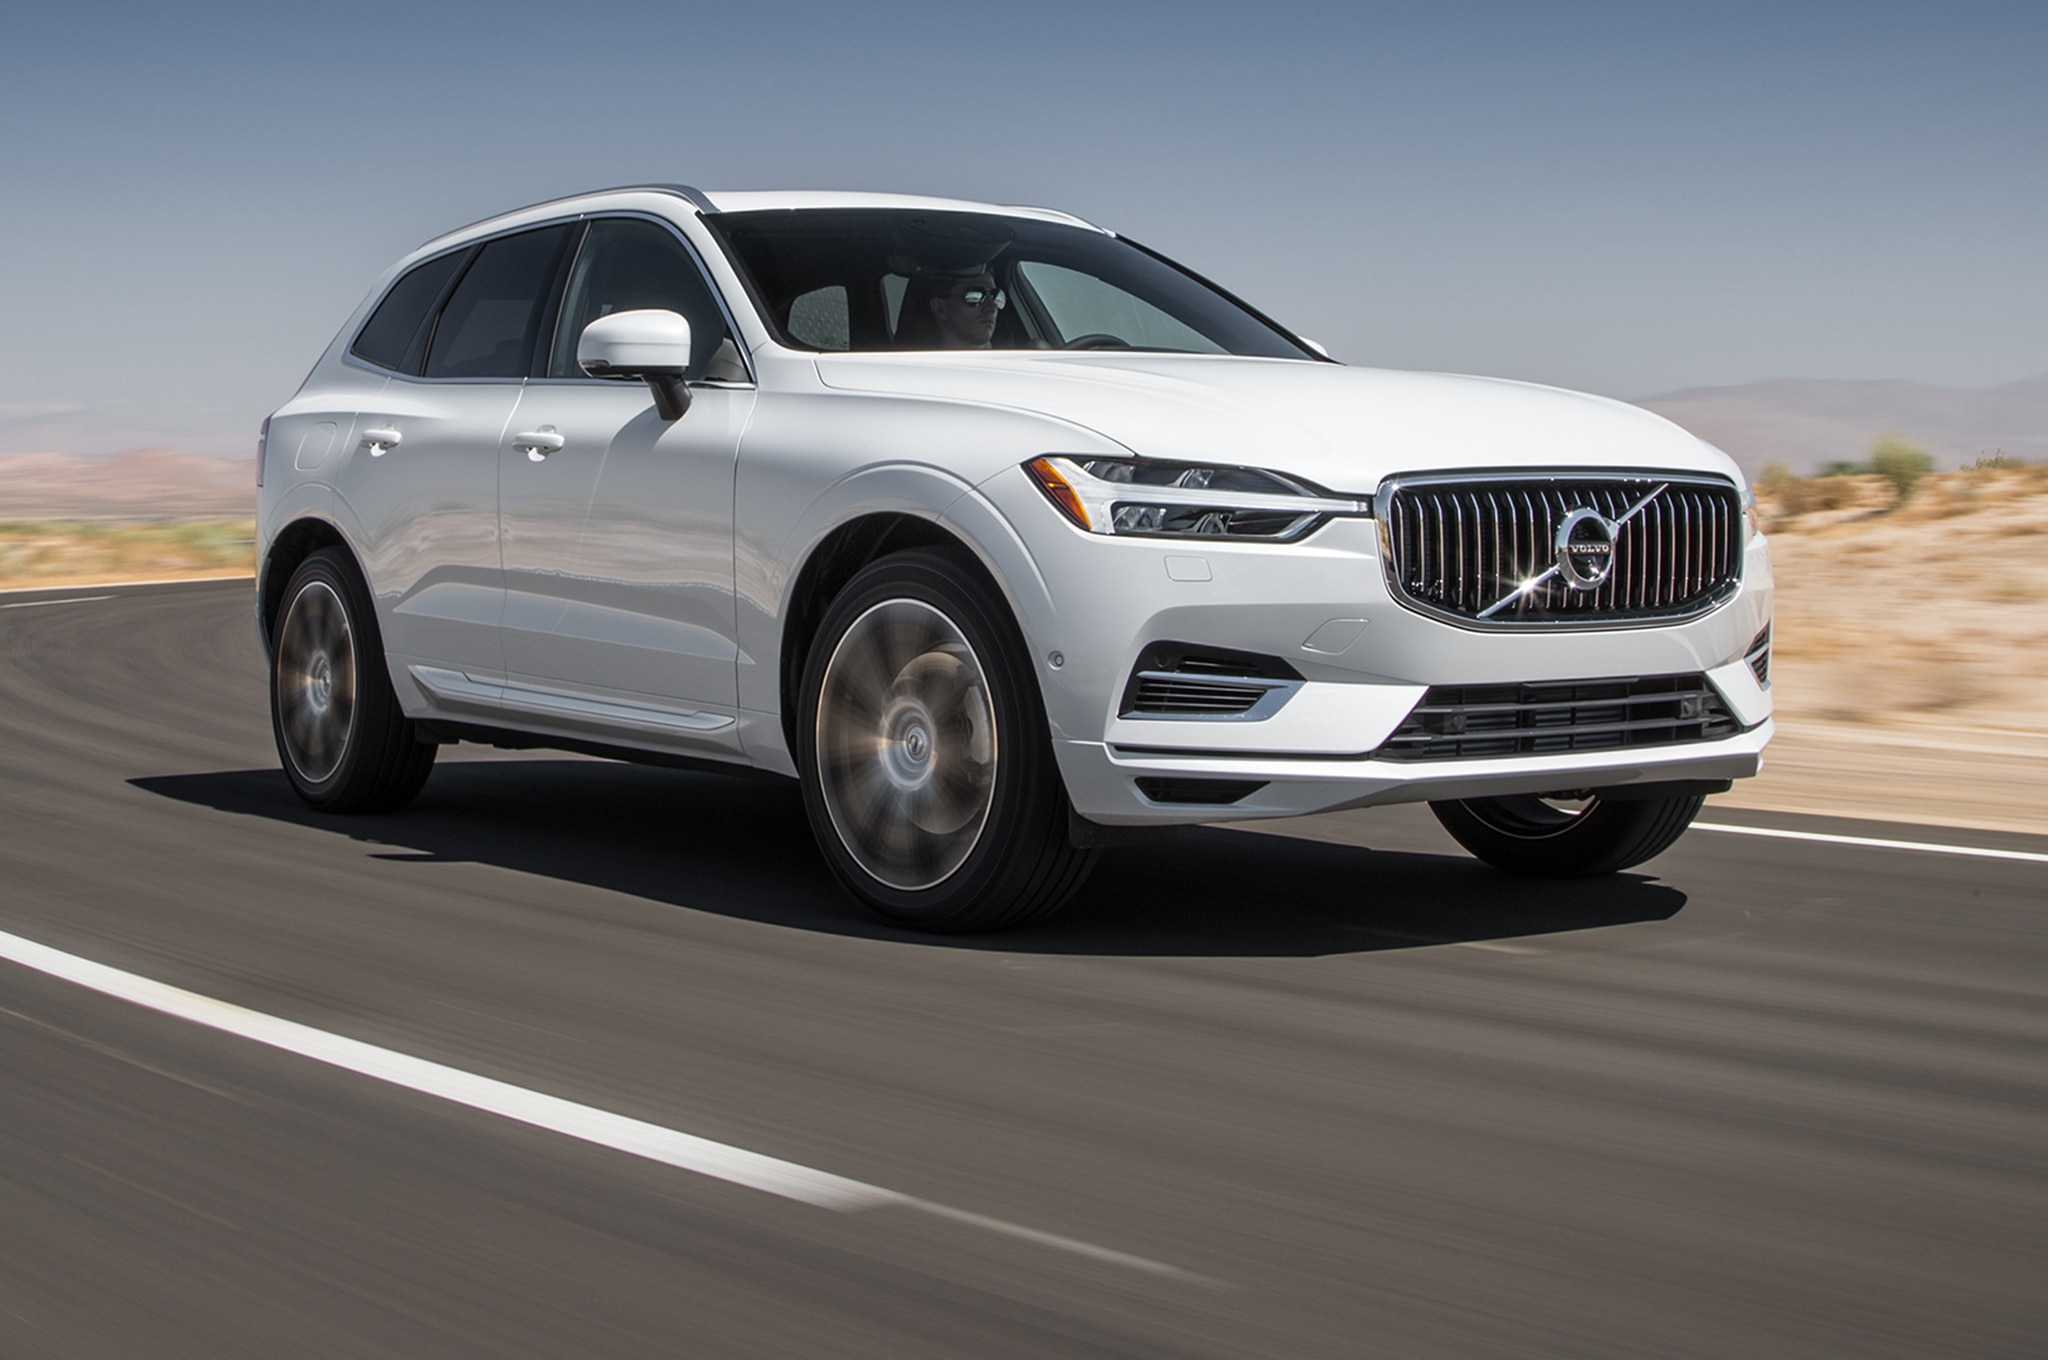 2018 Volvo XC60 T8 Inscription Front Three Quarter In Motion 01